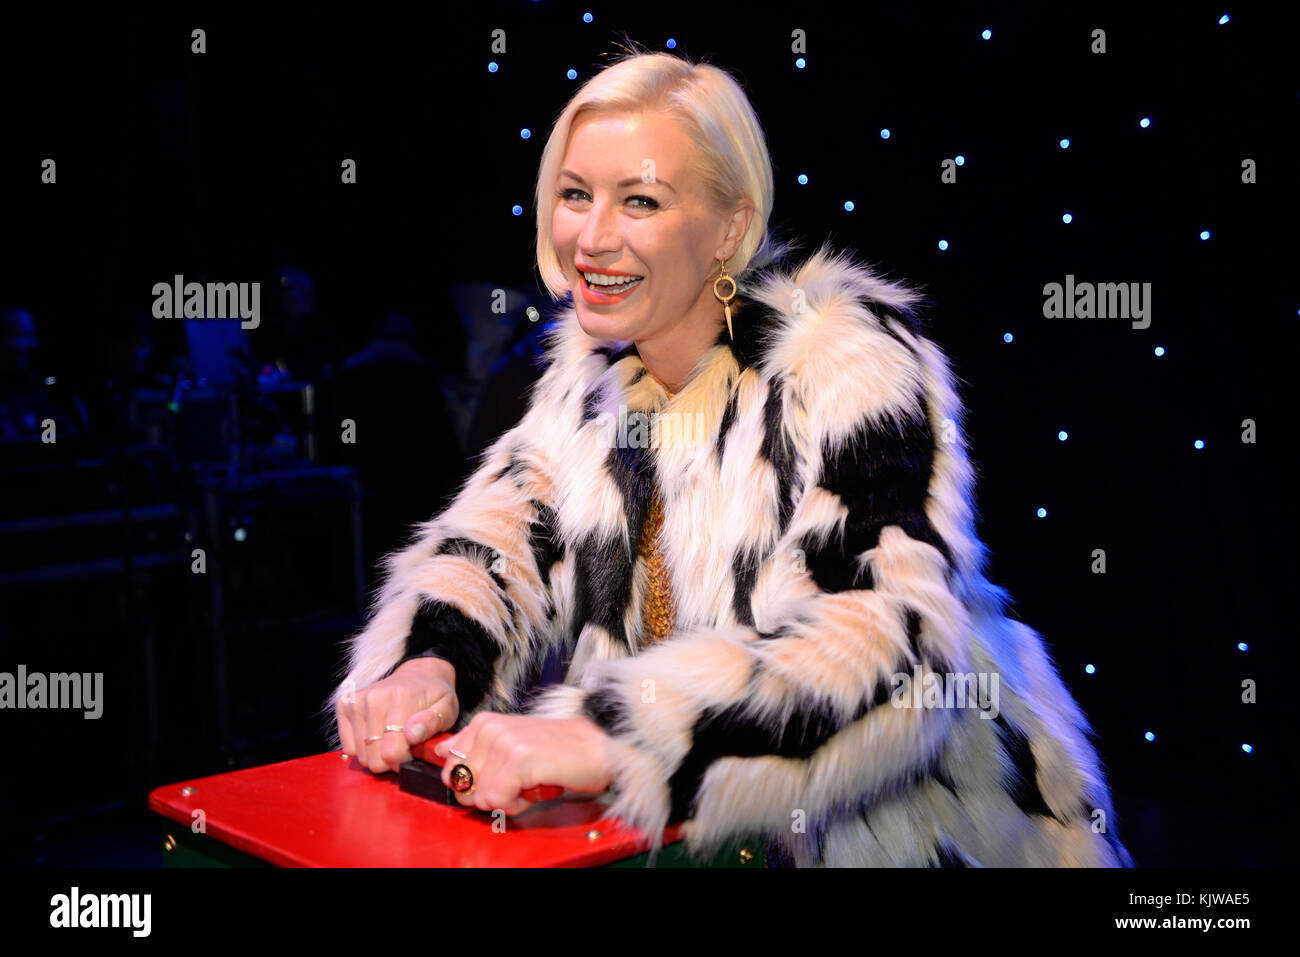 denise-van-outen-switching-on-the-christmas-lights-in-chelmsford-essex-KJWAE5.jpg